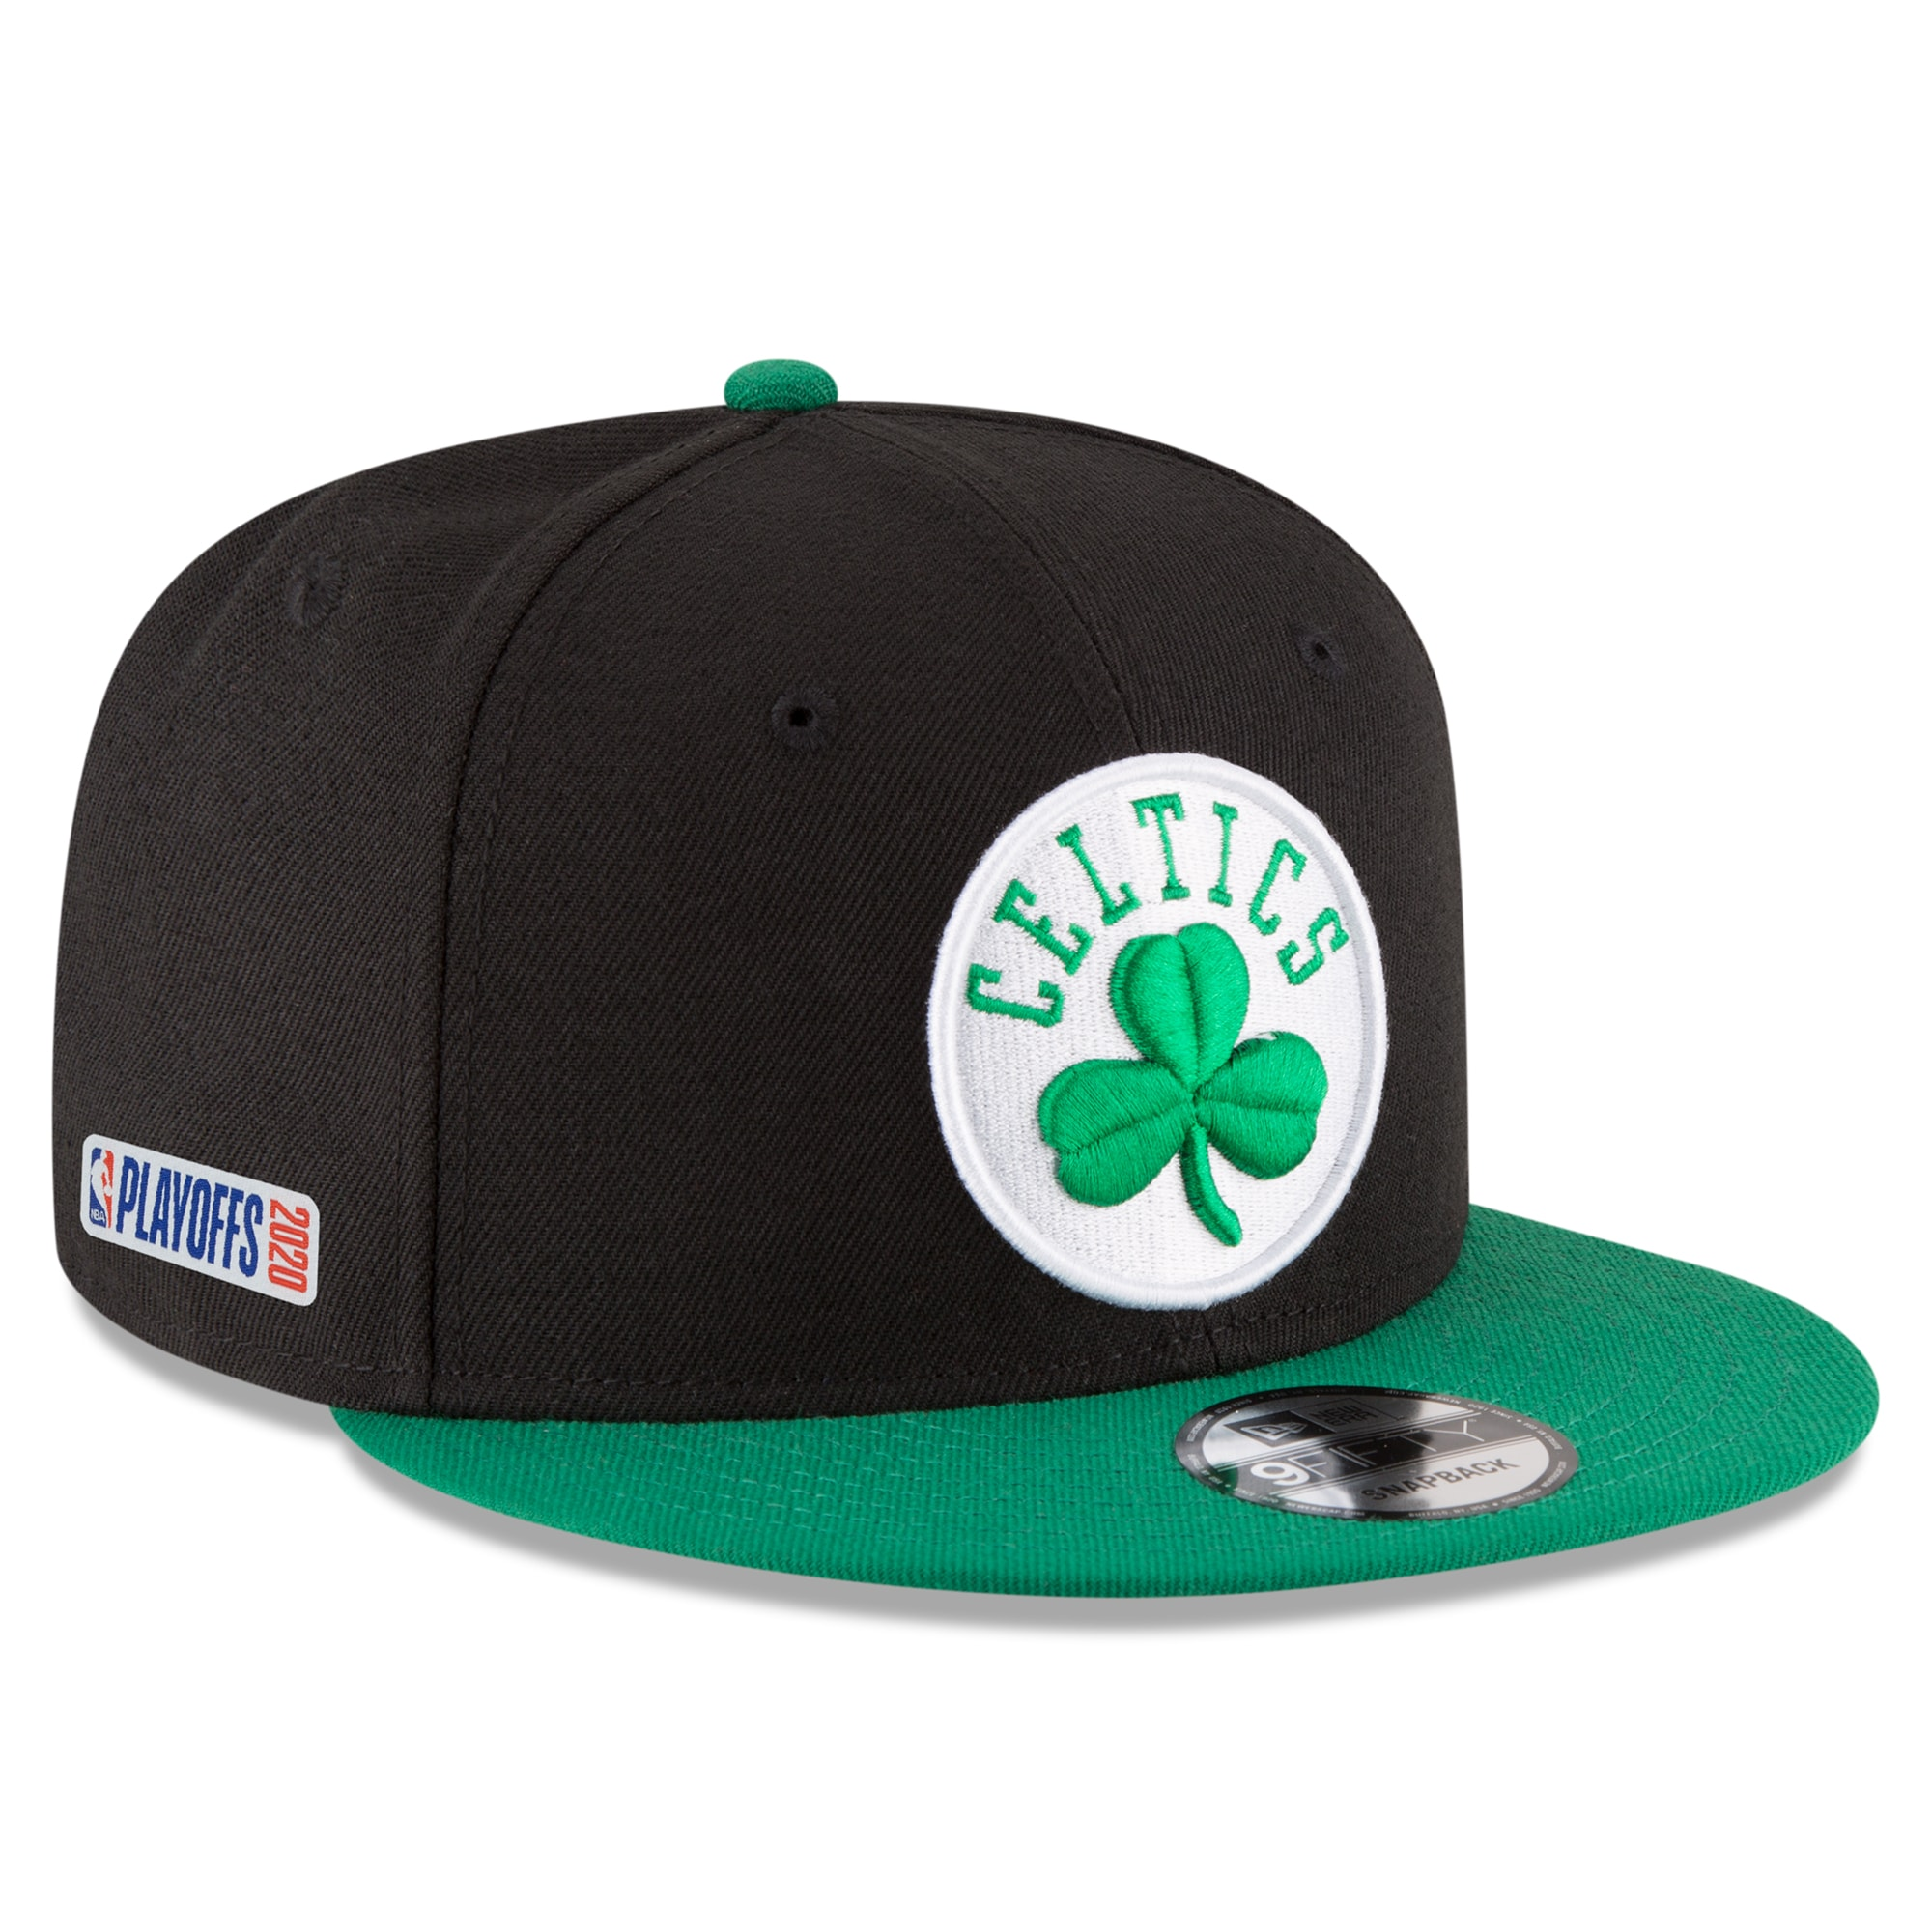 Boston Celtics New Era 2020 NBA Playoffs Bound 2-Tone 9FIFTY Snapback Adjustable Hat - Black